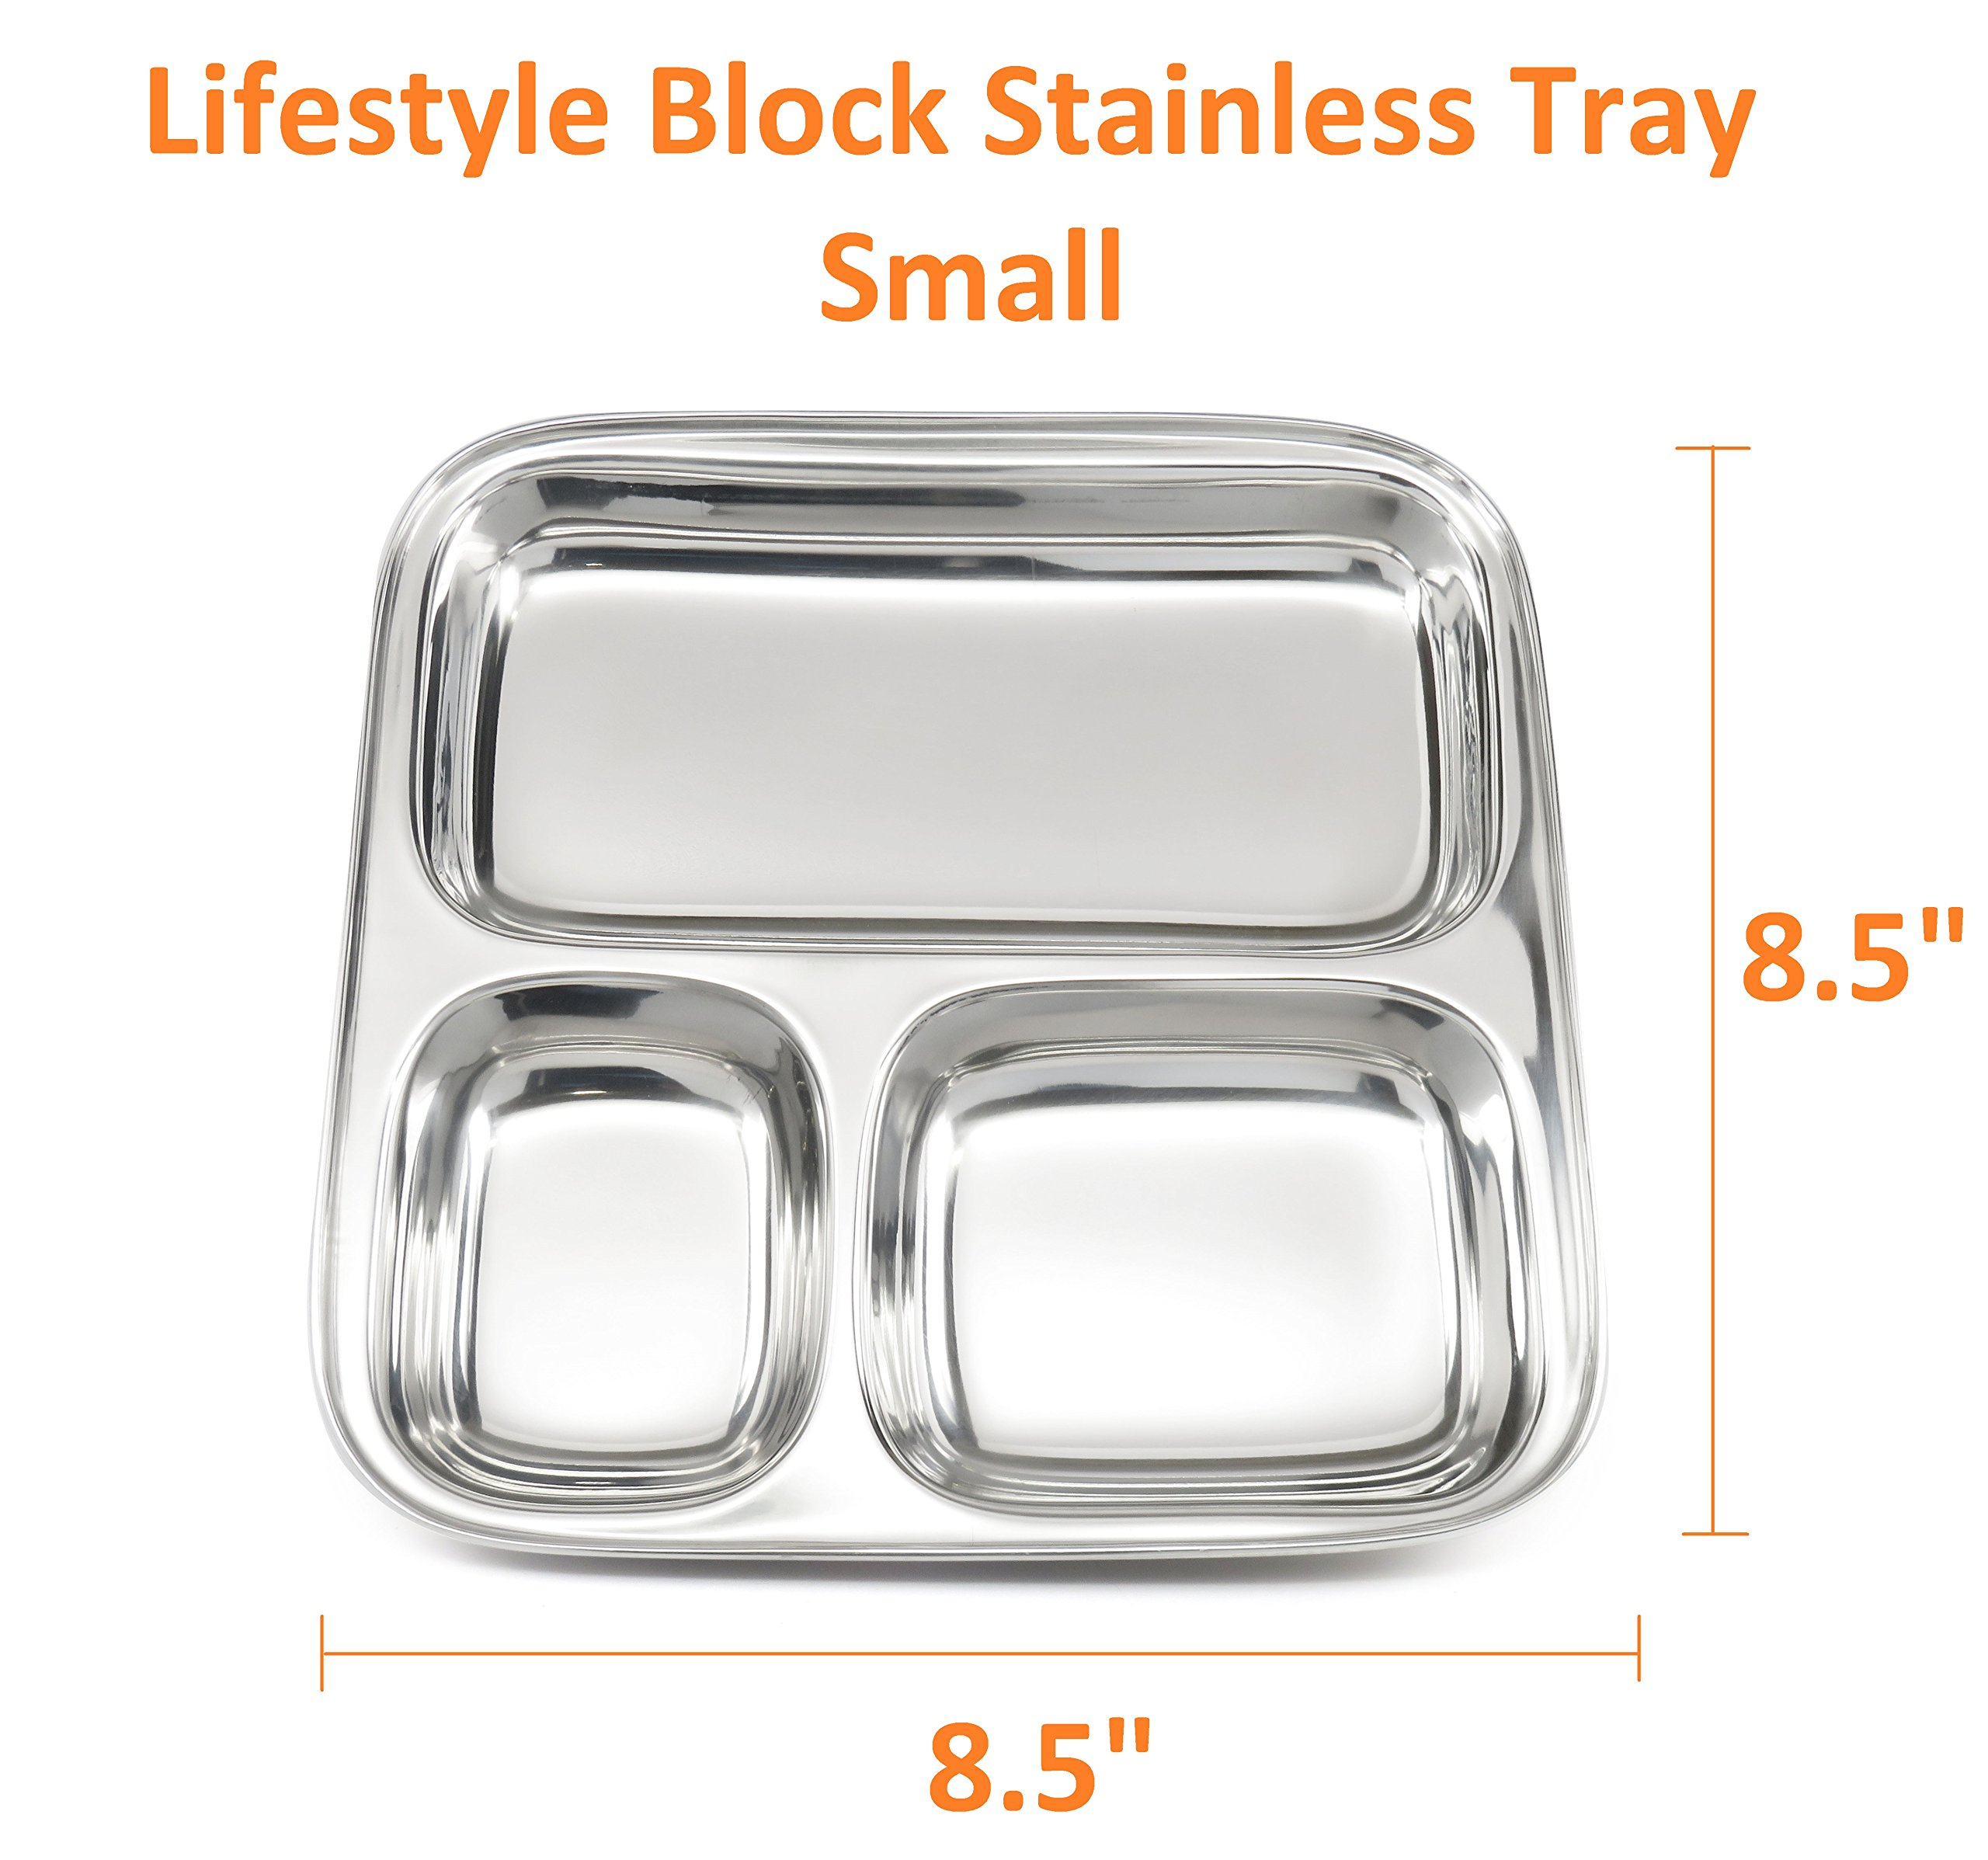 Lifestyle Block Stainless Steel Plastic-Free 3 Compartment Stainless Steel Kid's Plate – Small Divided Kid Plate by Lifestyle Block (Image #3)